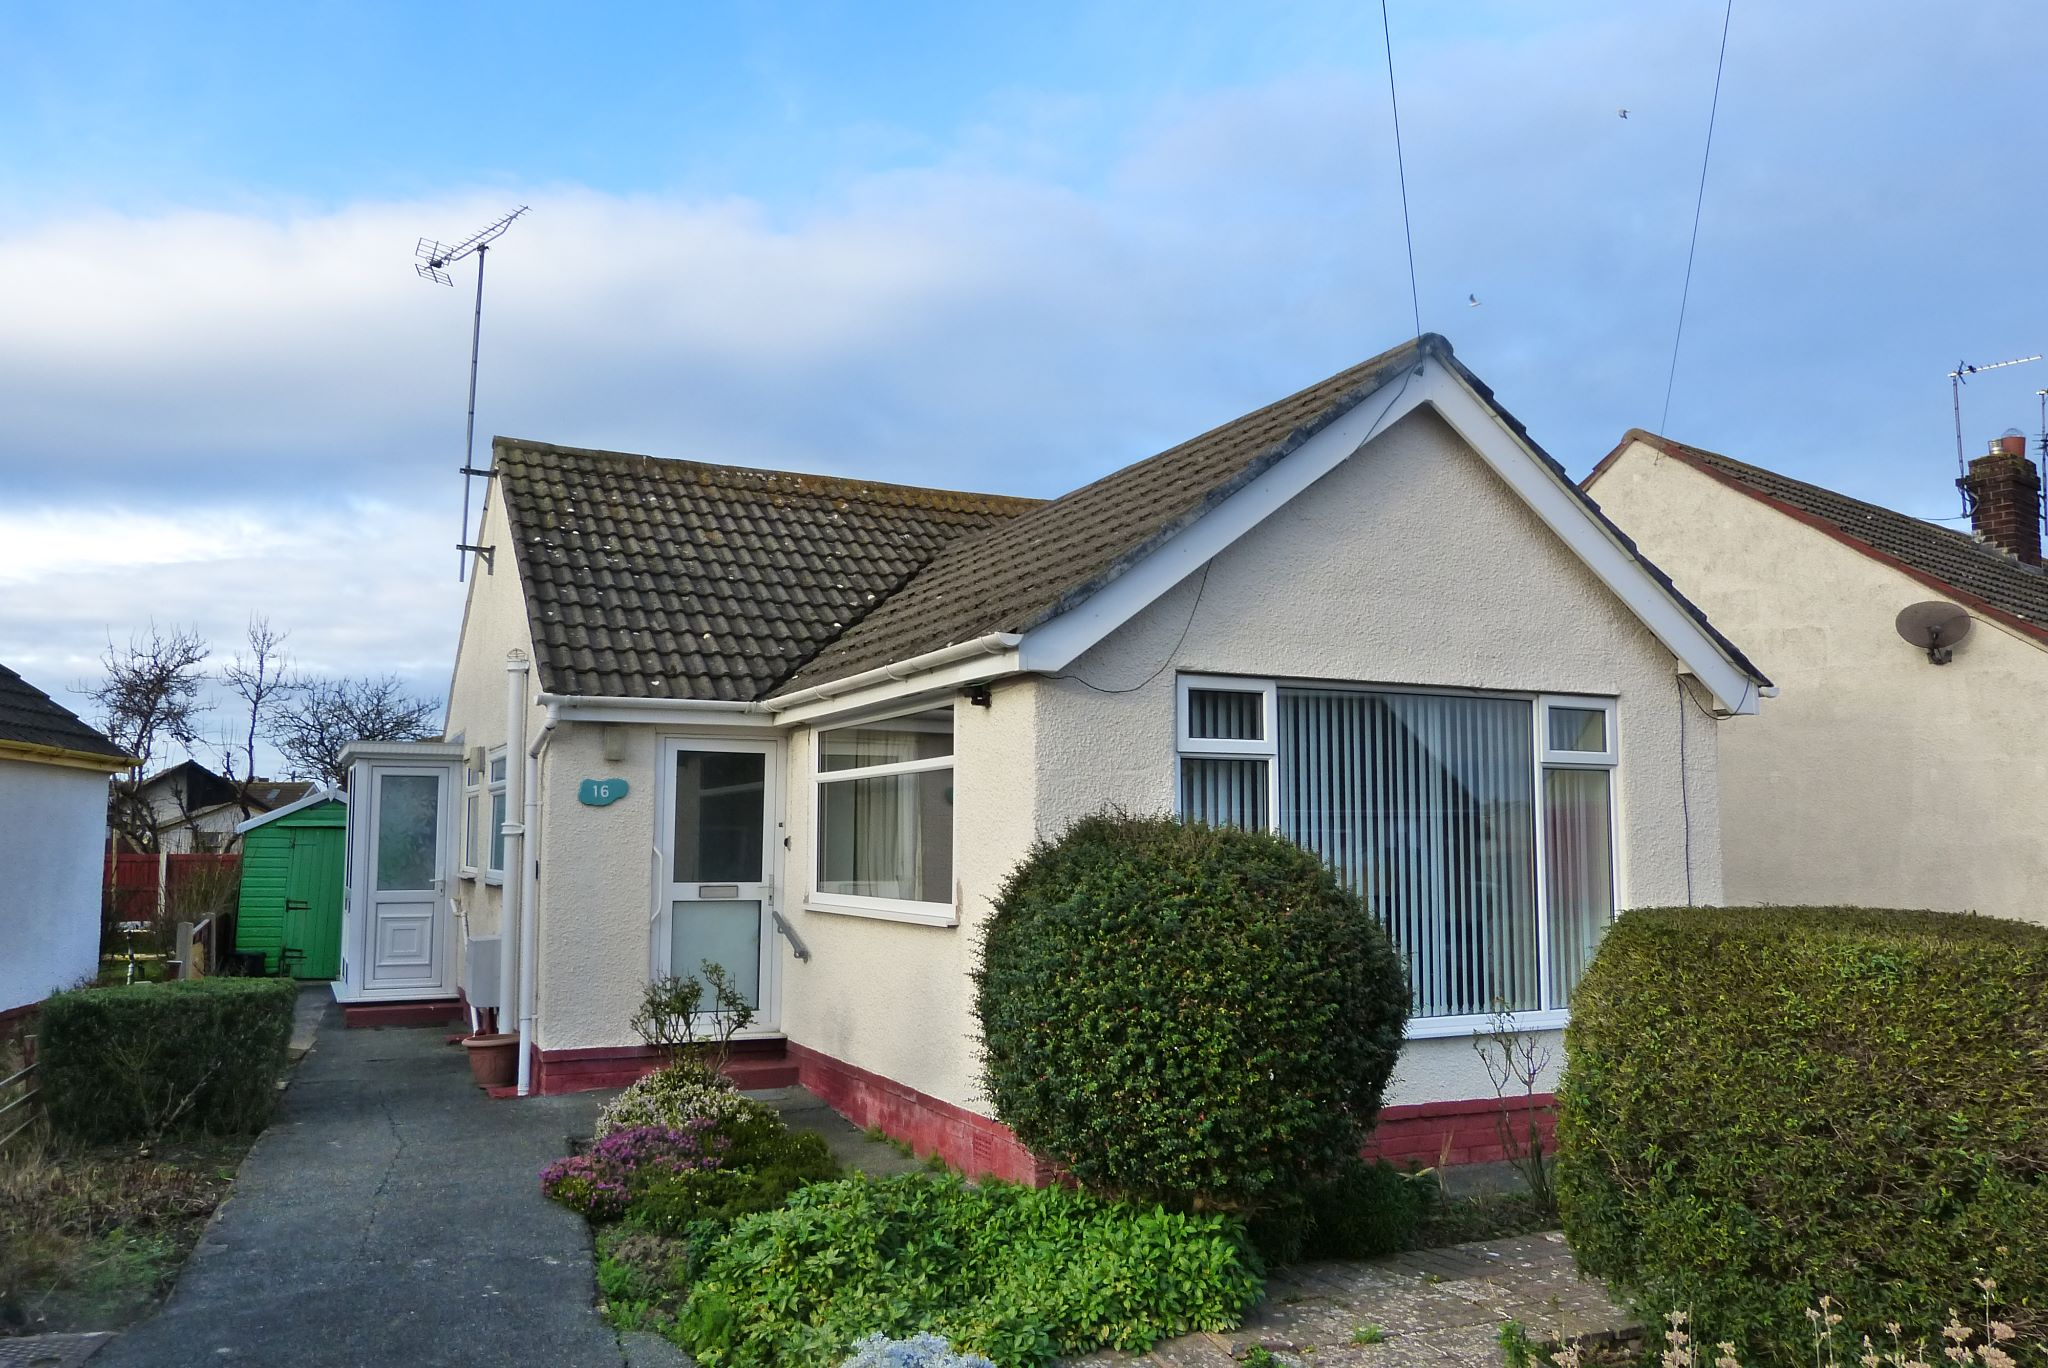 2 bedroom detached bungalow Sold in Pensarn - Photograph 1